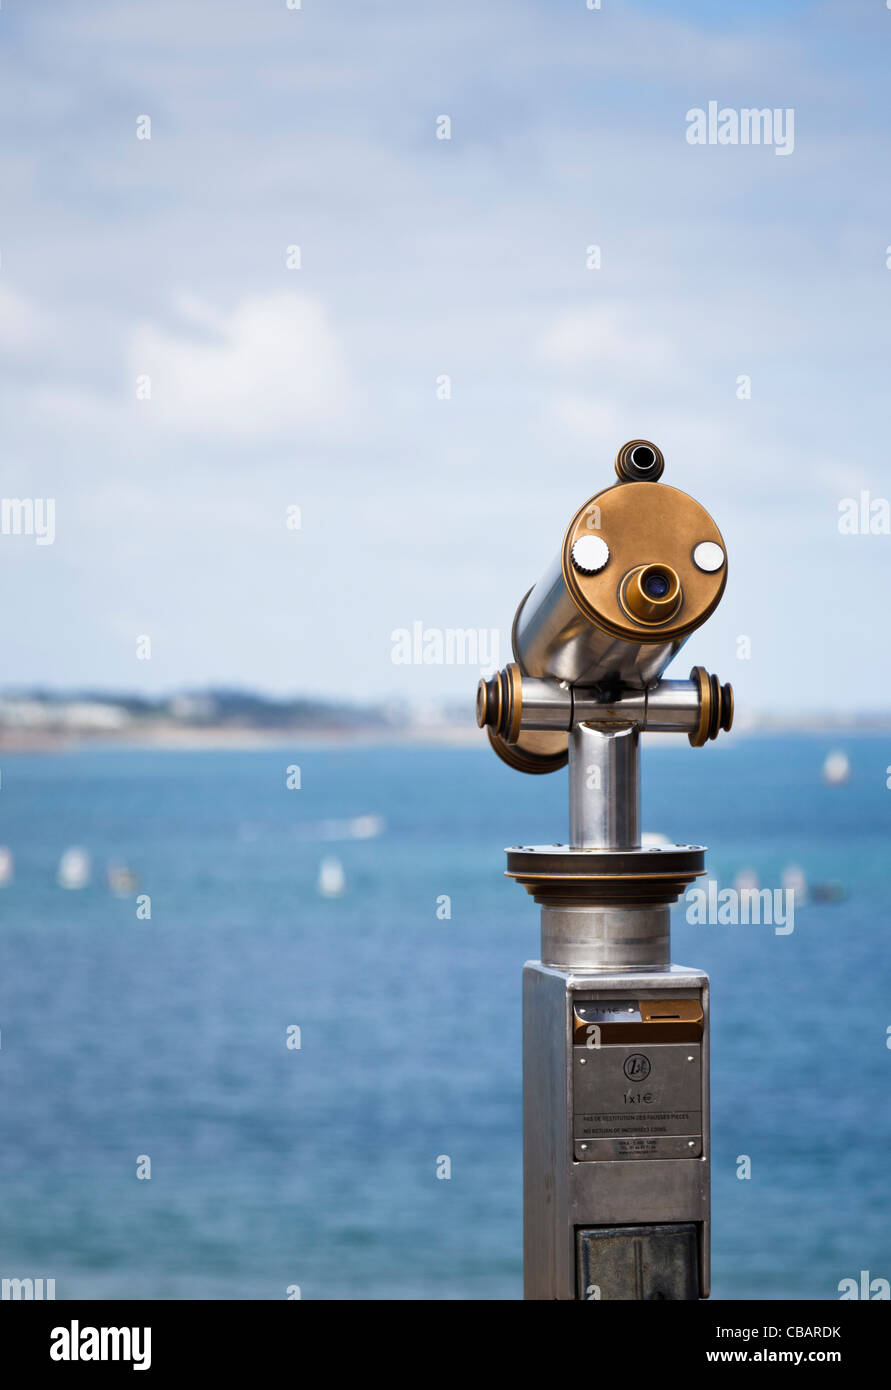 Telescope overlooking the sea and bay - Stock Image